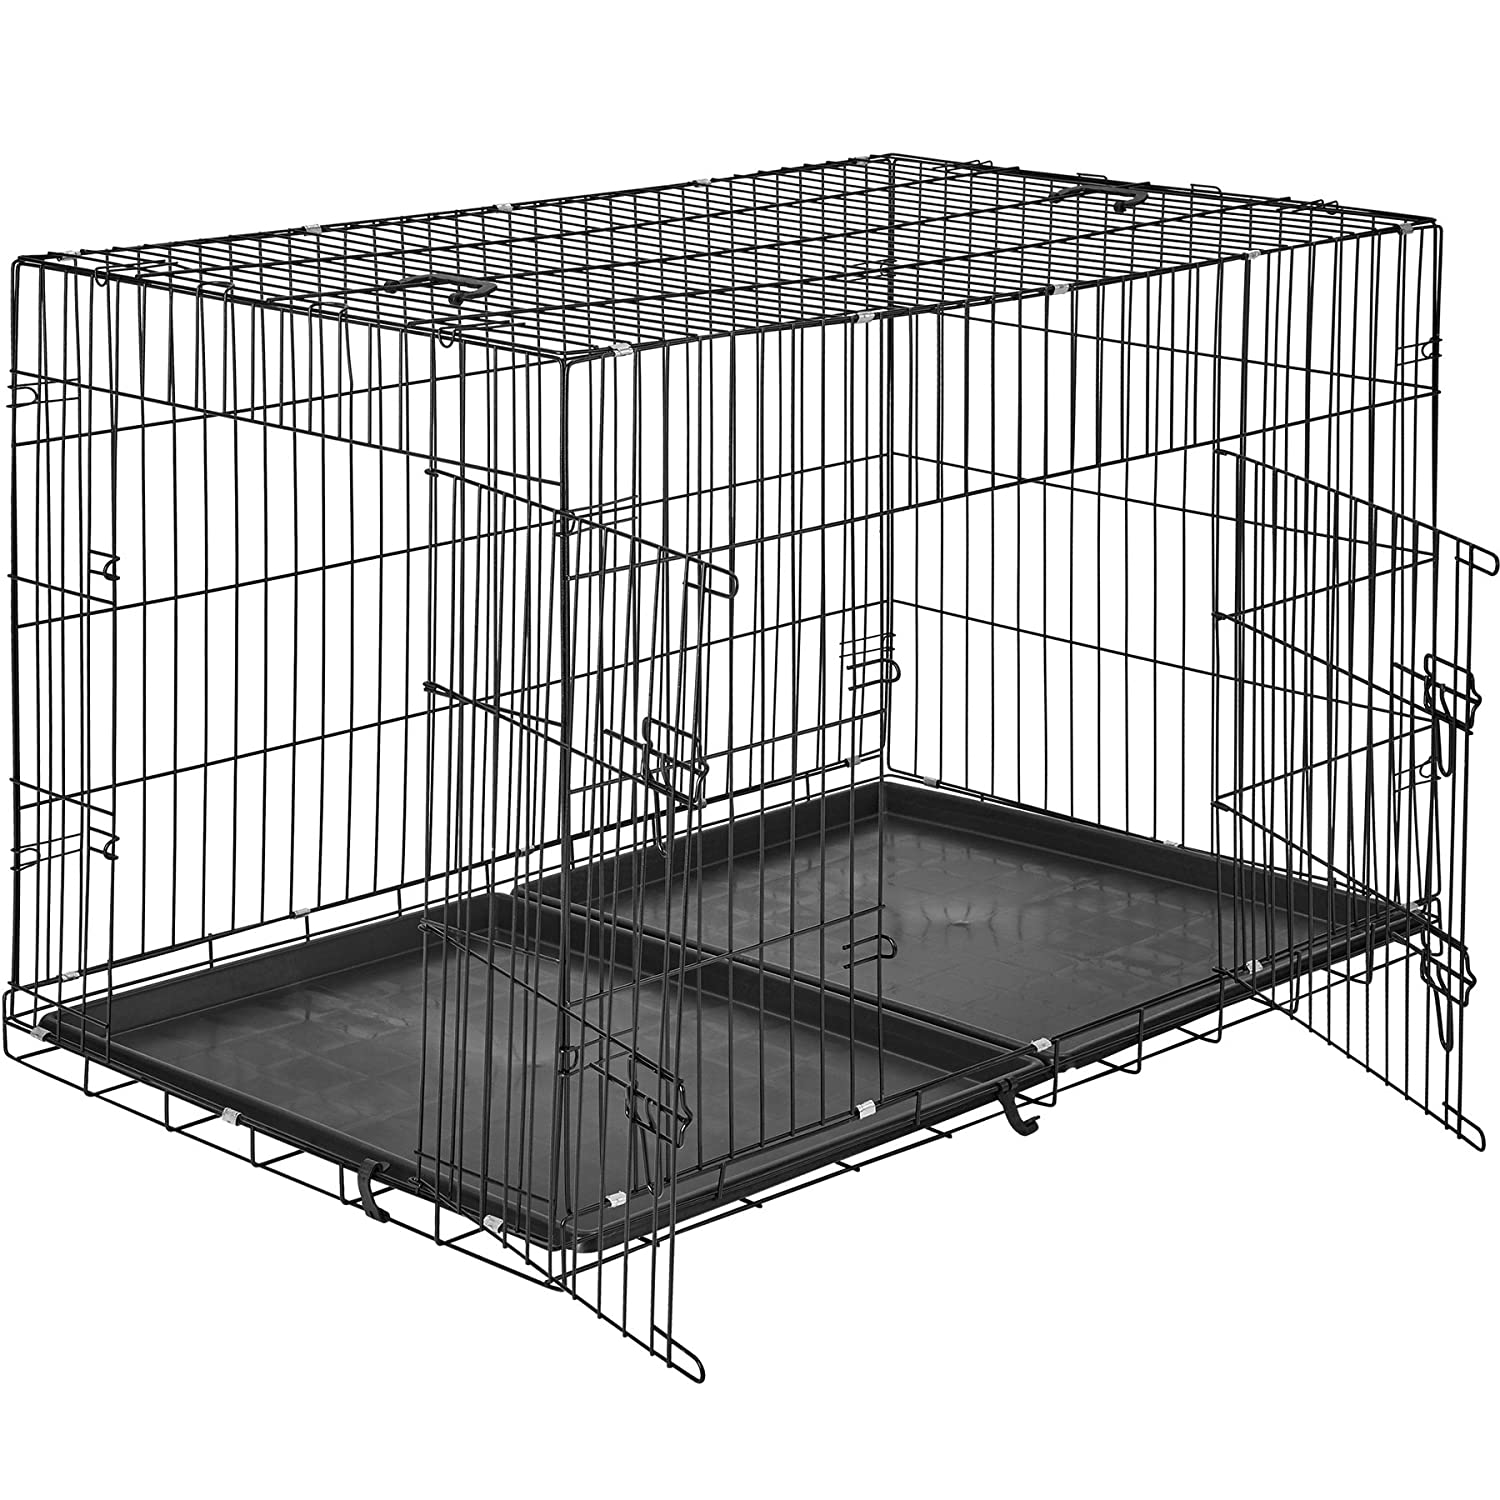 122x76x81cm   No. 402297 TecTake Dog crate Transport carrier   2 large doors with bar locks   Collapsible   Different models (122x76x81cm   No. 402297)